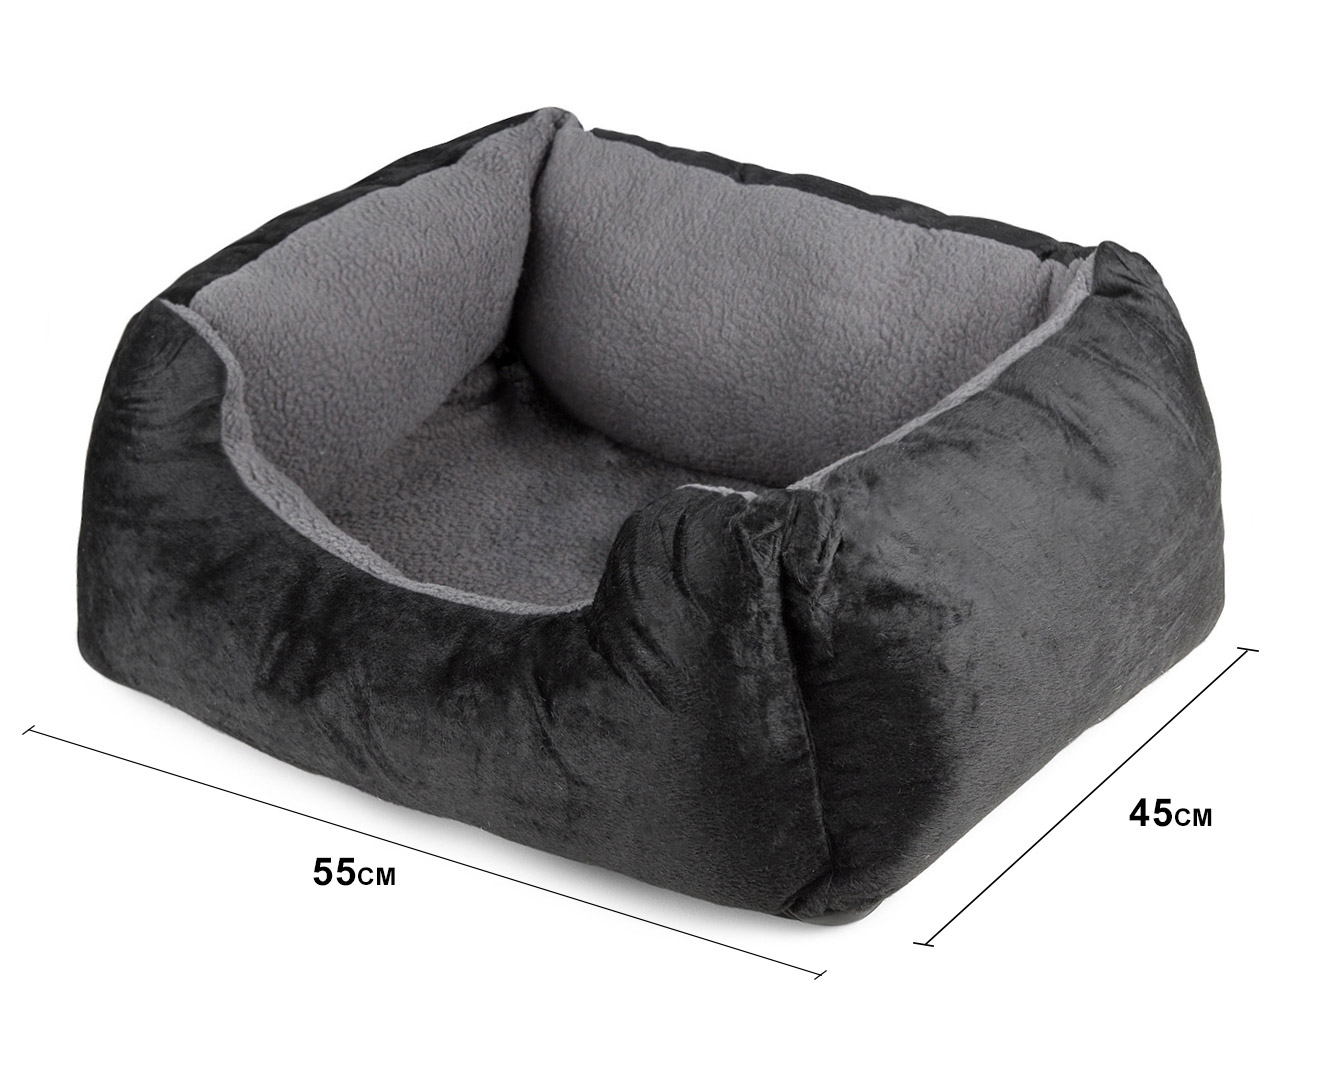 Heated Pet Bed With Walls By Tail Waggers 55x45cm For